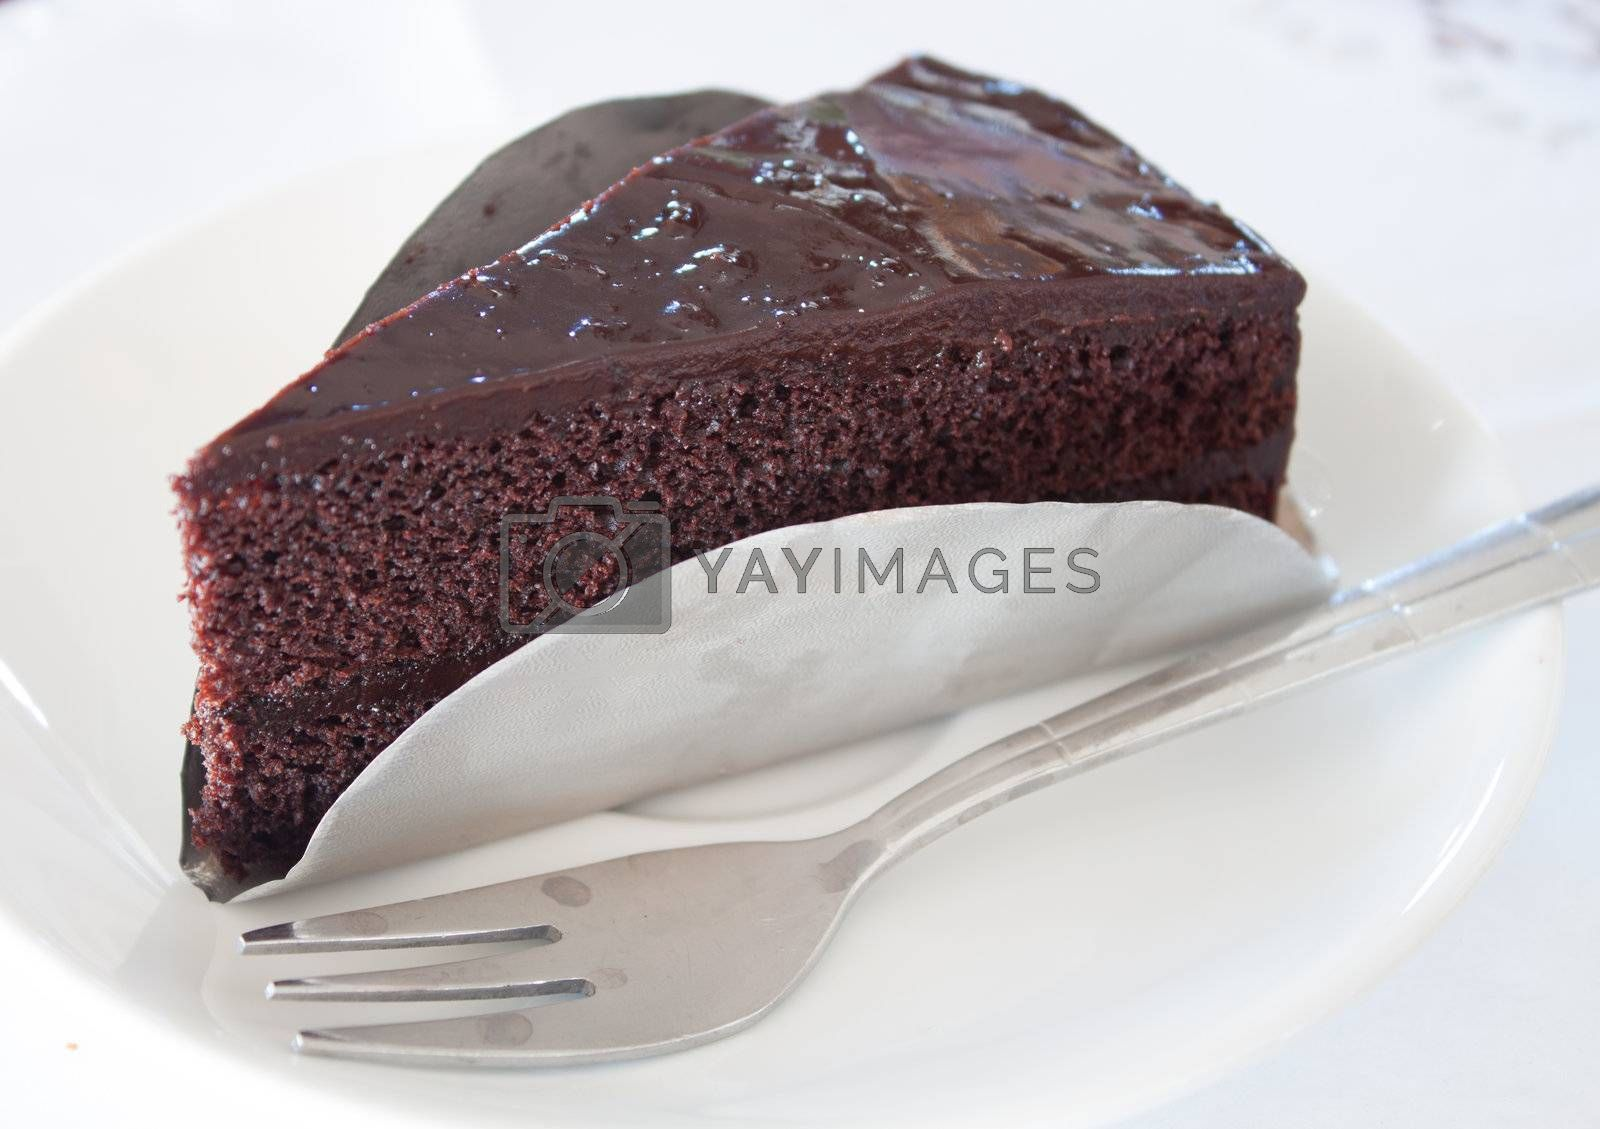 A piece of dark chocolate cake on white isolated background